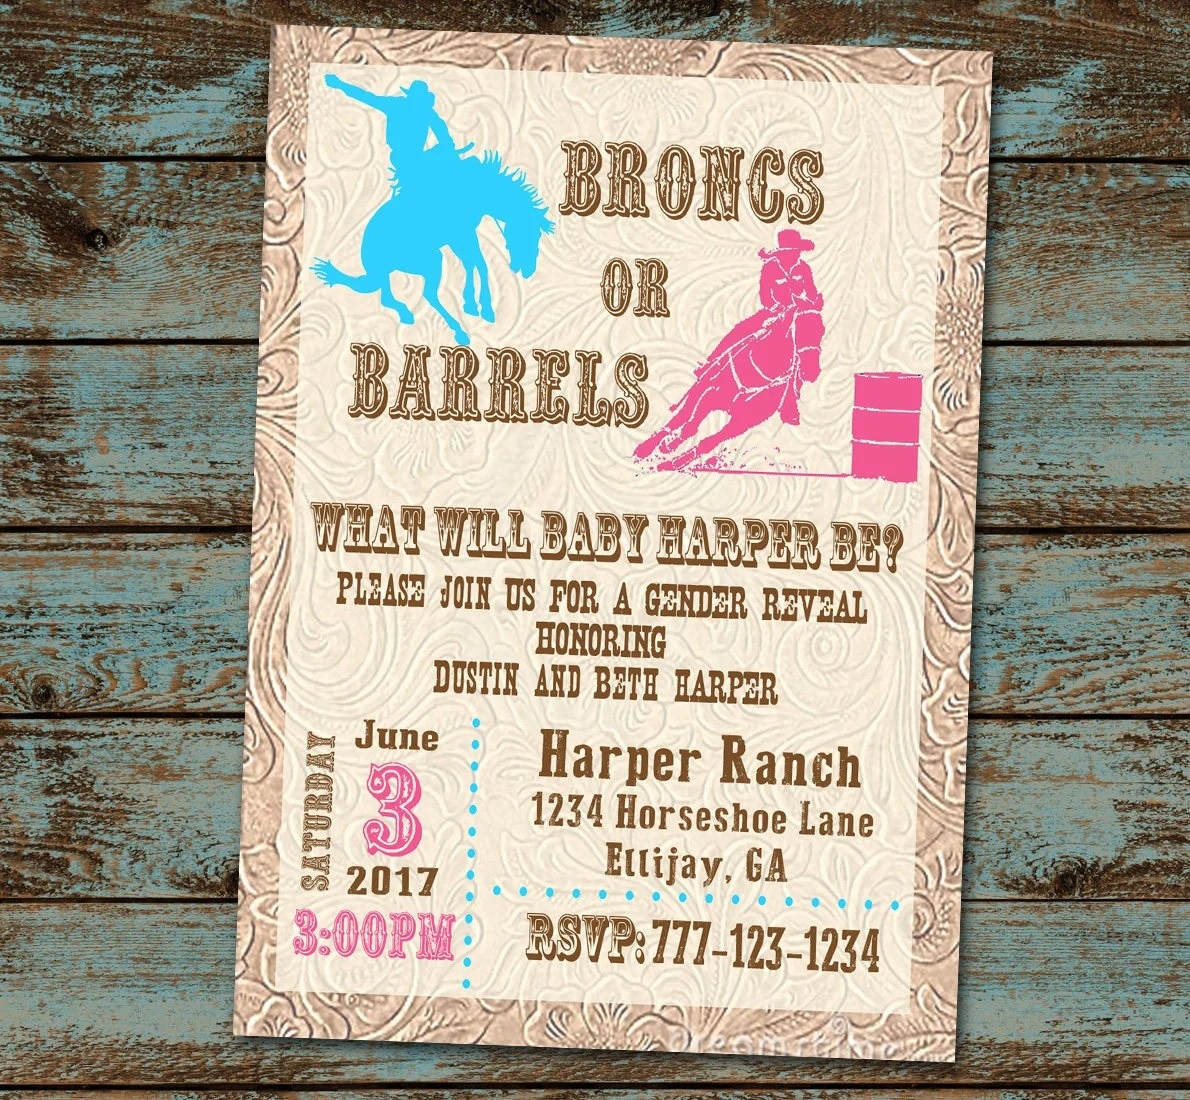 Broncs or Barrels Gender Reveal Gender Reveal Party